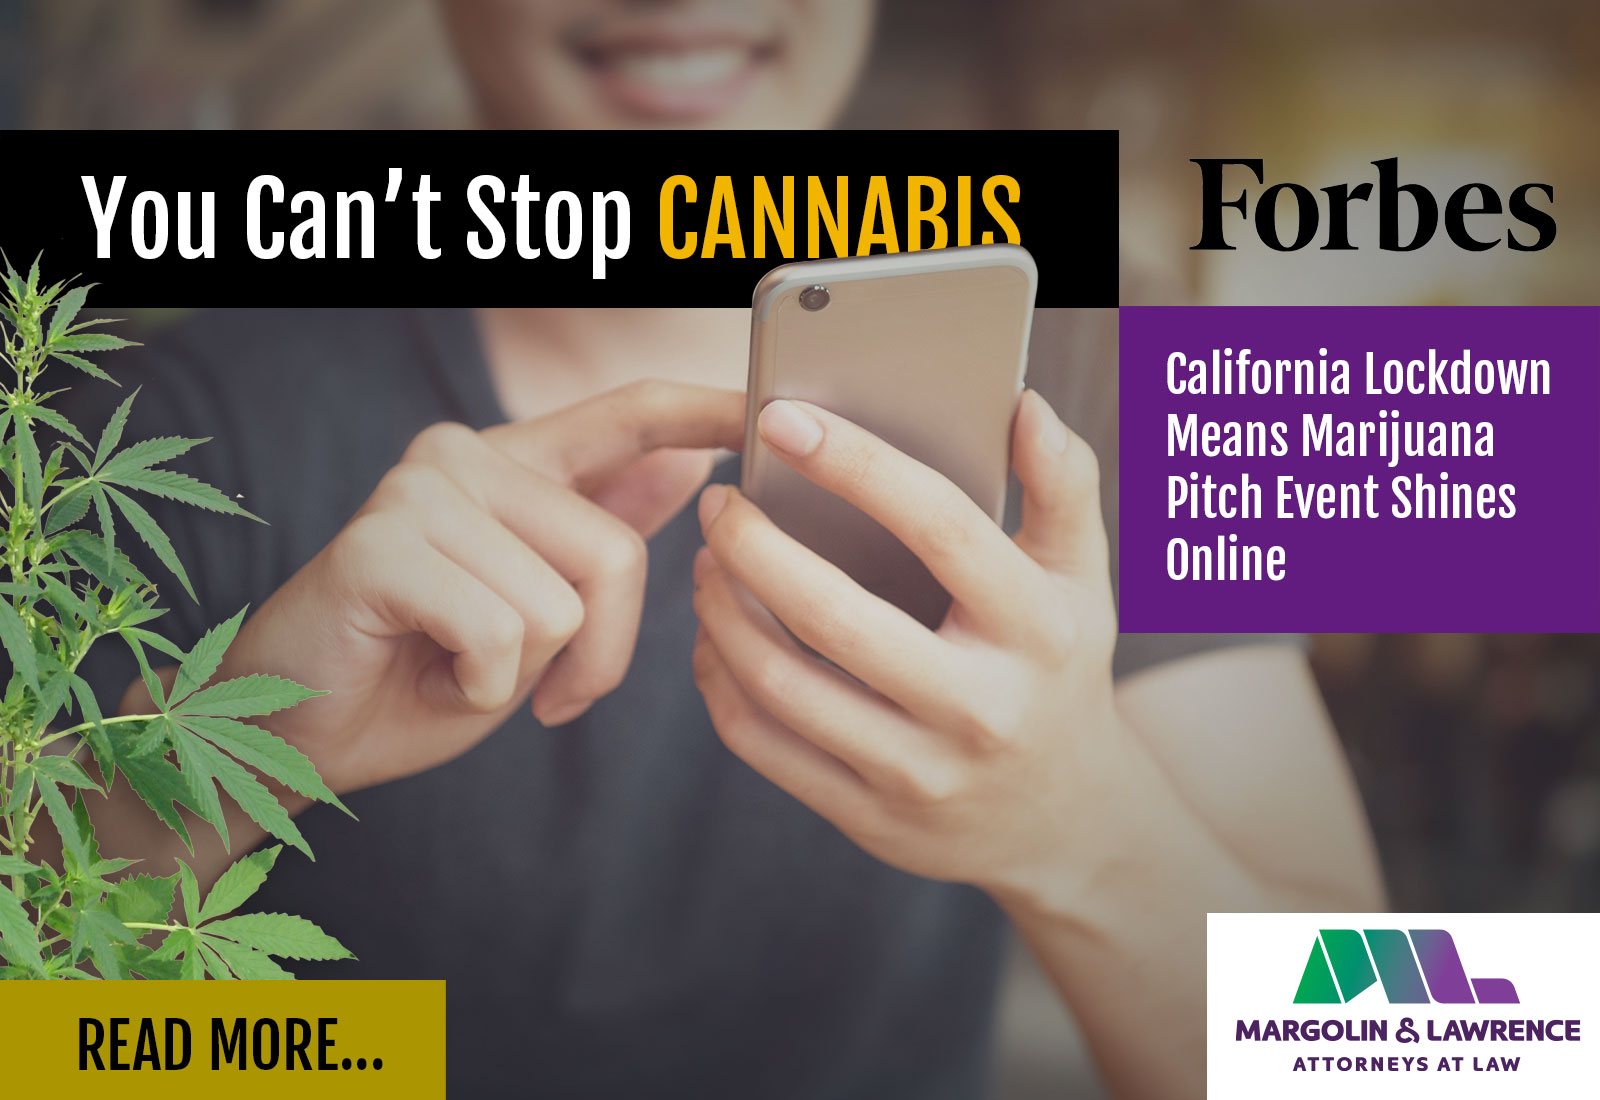 You Can't Stop Cannabis: California Lockdown Means Marijuana Pitch Event Shines Online